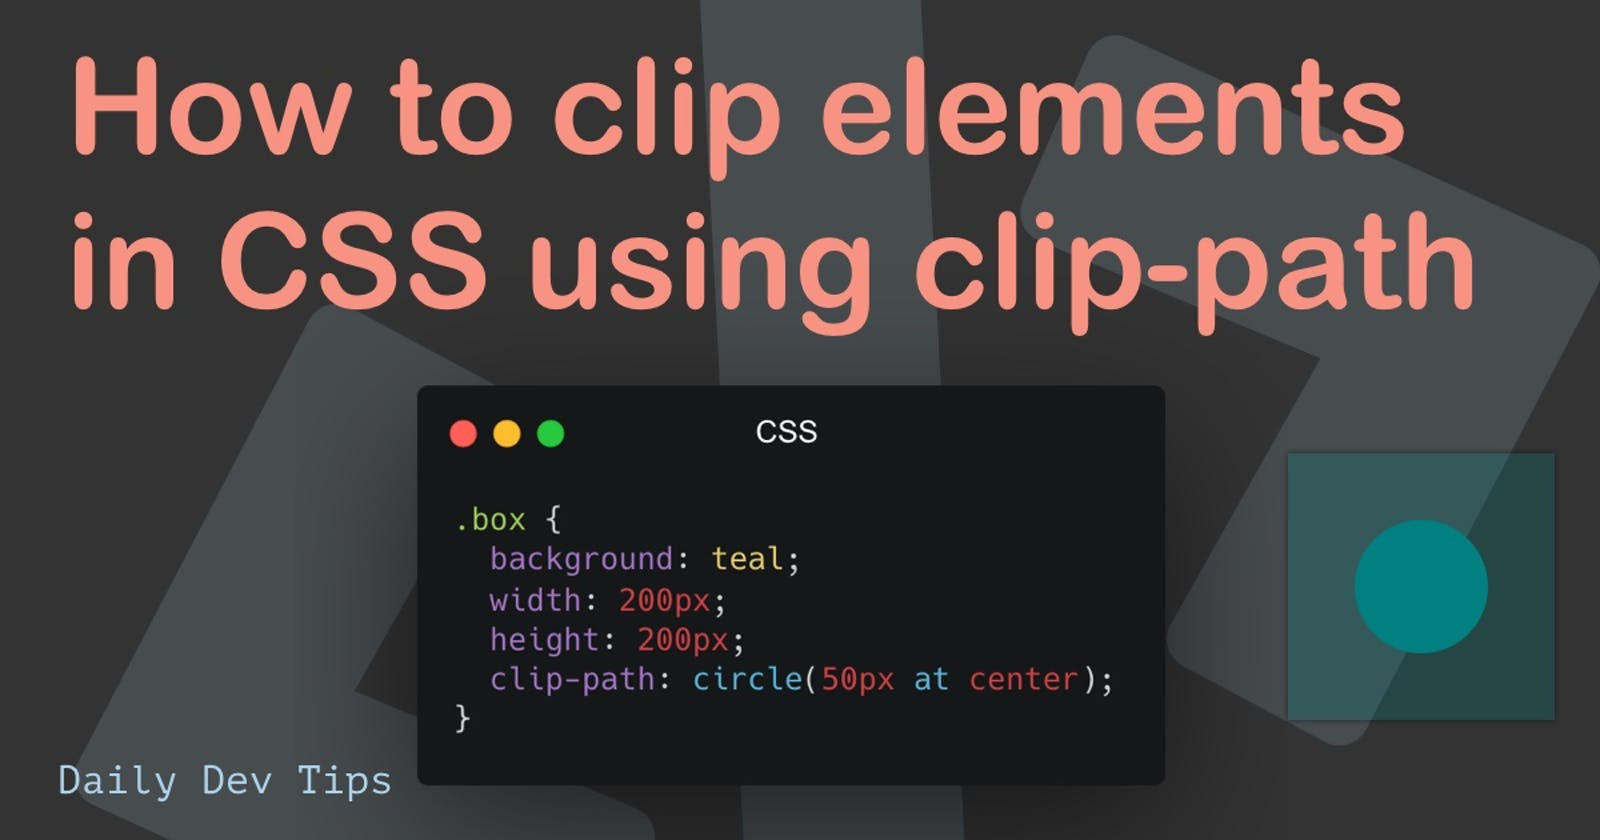 How to clip elements in CSS using clip-path